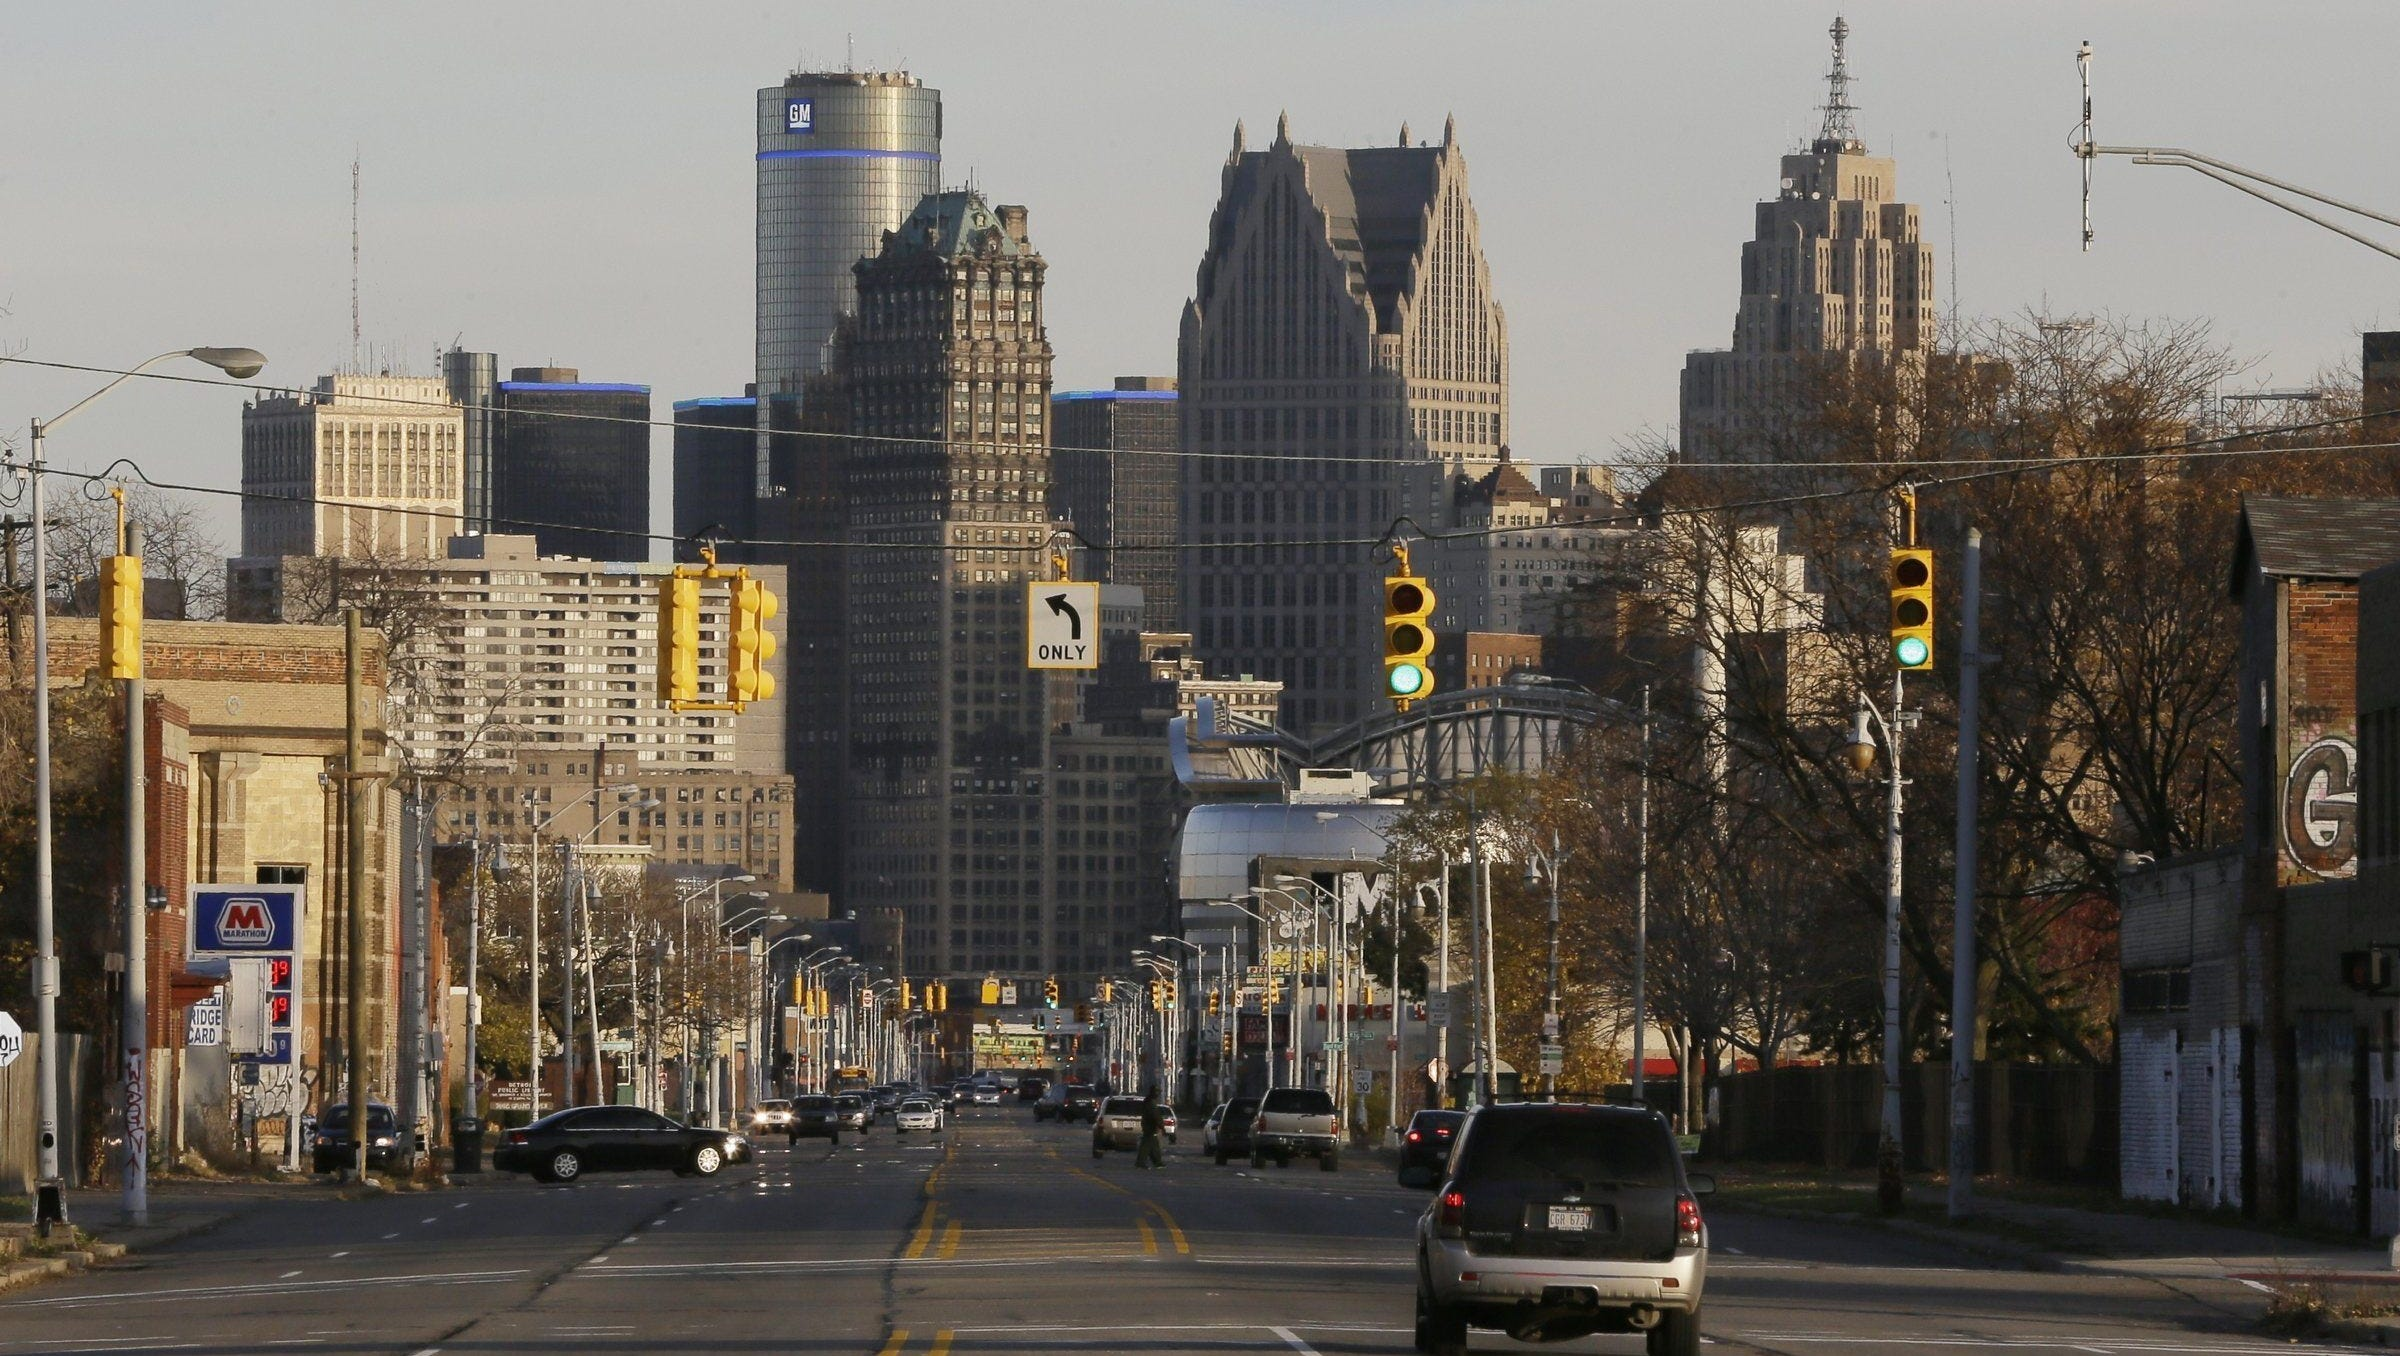 freep.com - John Gallagher, Detroit Free Press - Detroit's historic bankruptcy and more contributed to city's revival